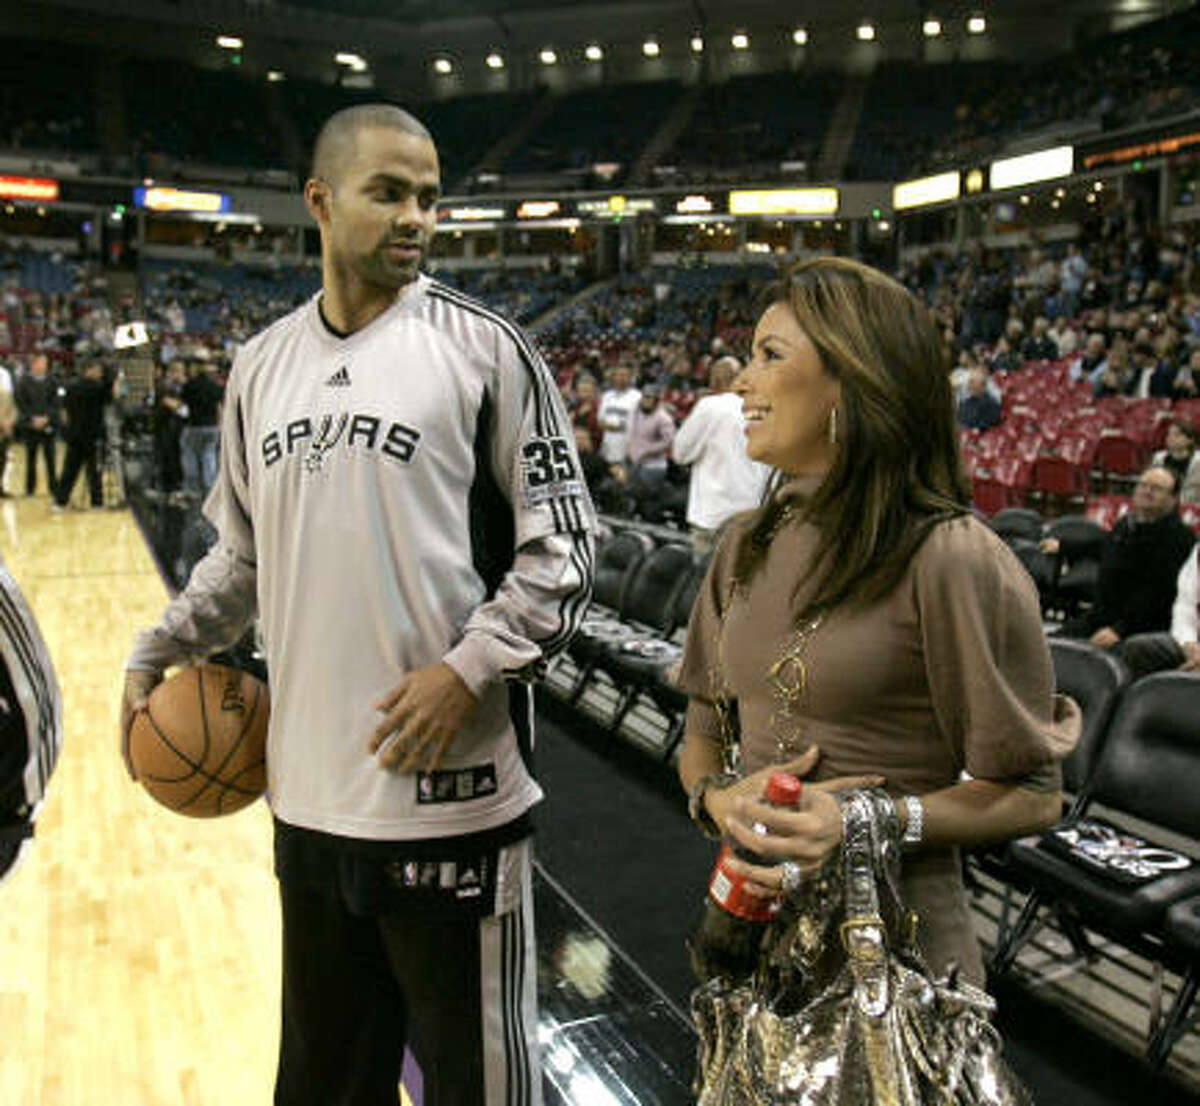 December 2007: Parker denies the published claims by a French model that she had an affair with him. He says he has never even met her. He sues the celebrity gossip website, which a few months later publicly apologizes, declaring it had been misled by the model. Days before, Parker talks to his wife, Eva Longoria Parker, before a Spurs game in Sacramento, Calif. on Nov. 26.